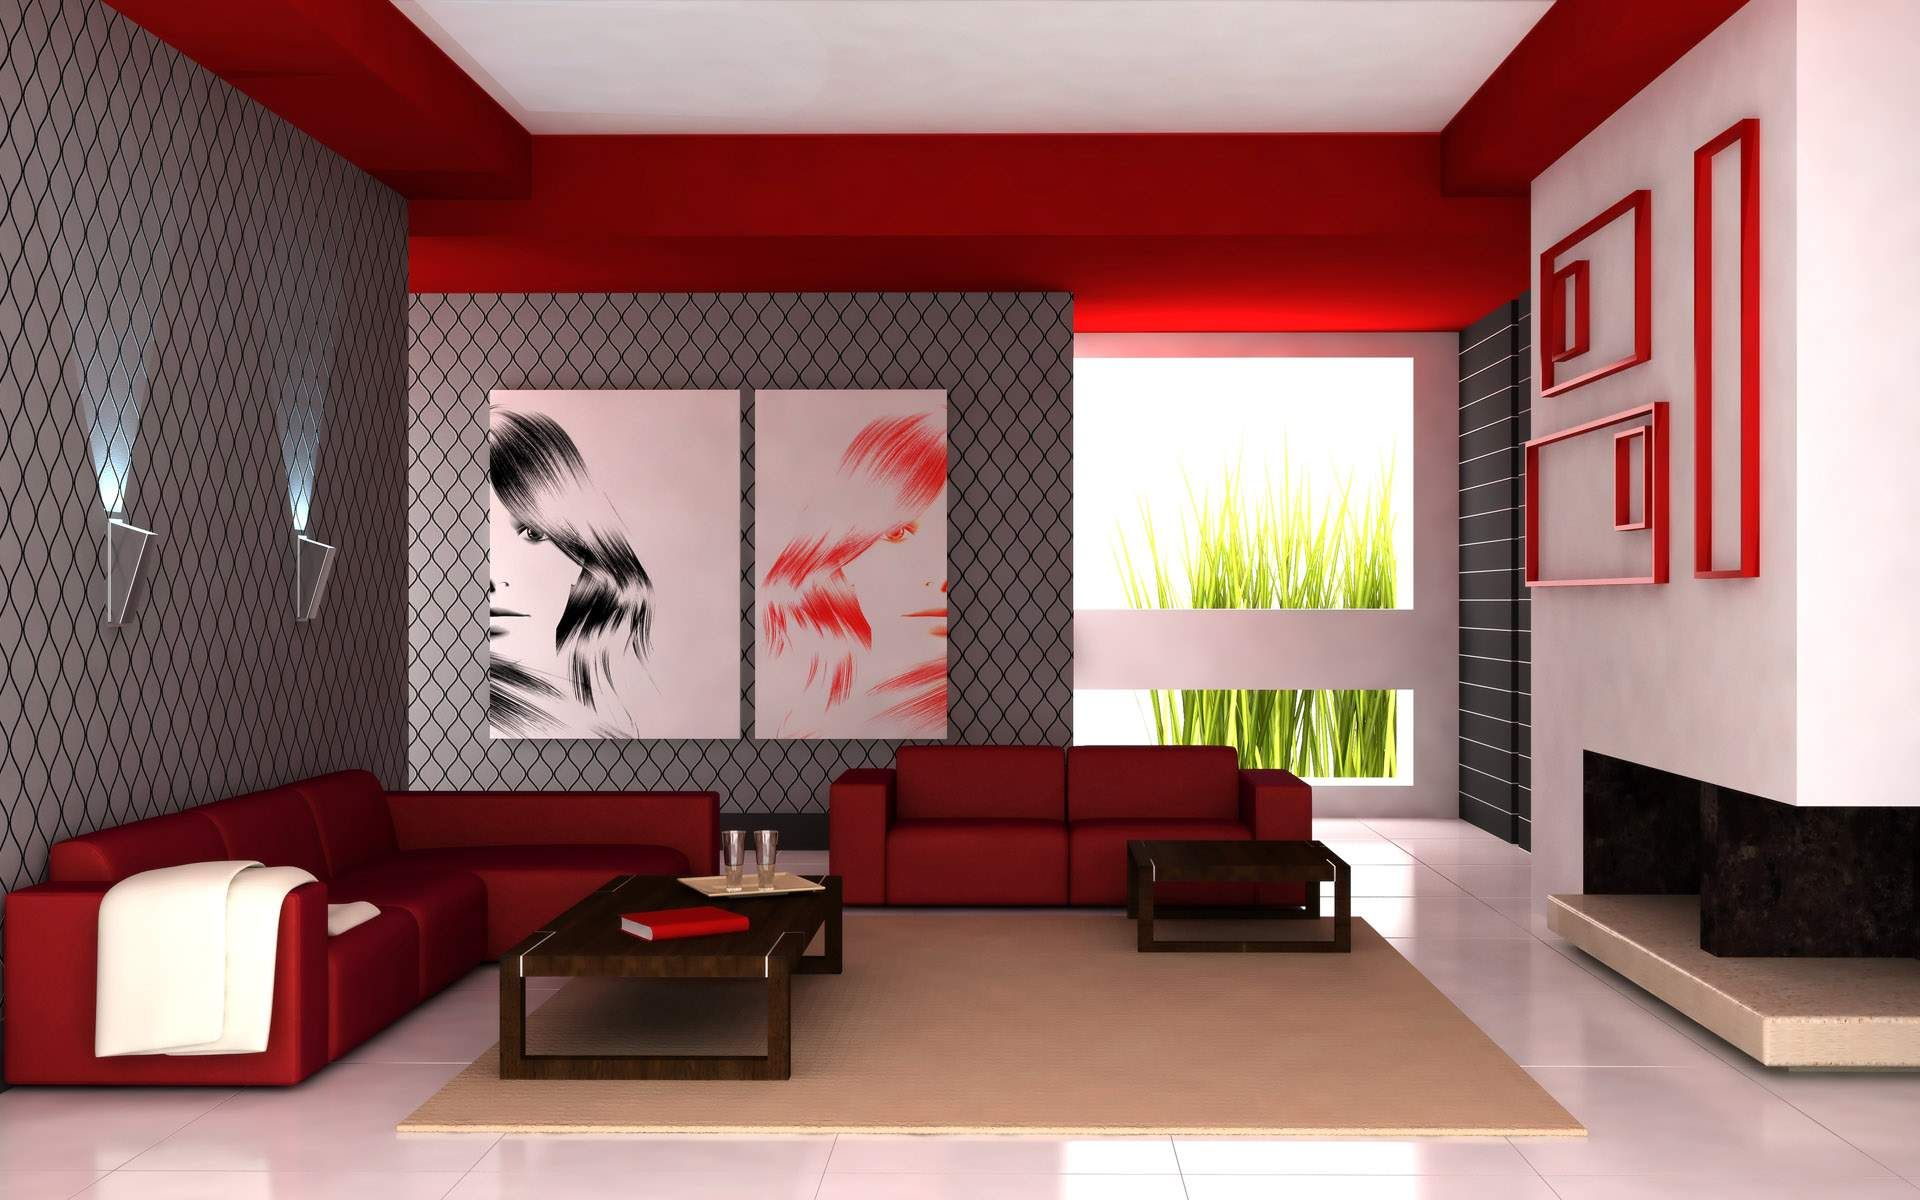 The Appealing Digital Imagery Is Segment Of Modern Pink Living Room Paint Ideas Which Is Sorted Within Color Theory Fav Tasarim Oda Ic Tasarim Ev Ic Mekanlari